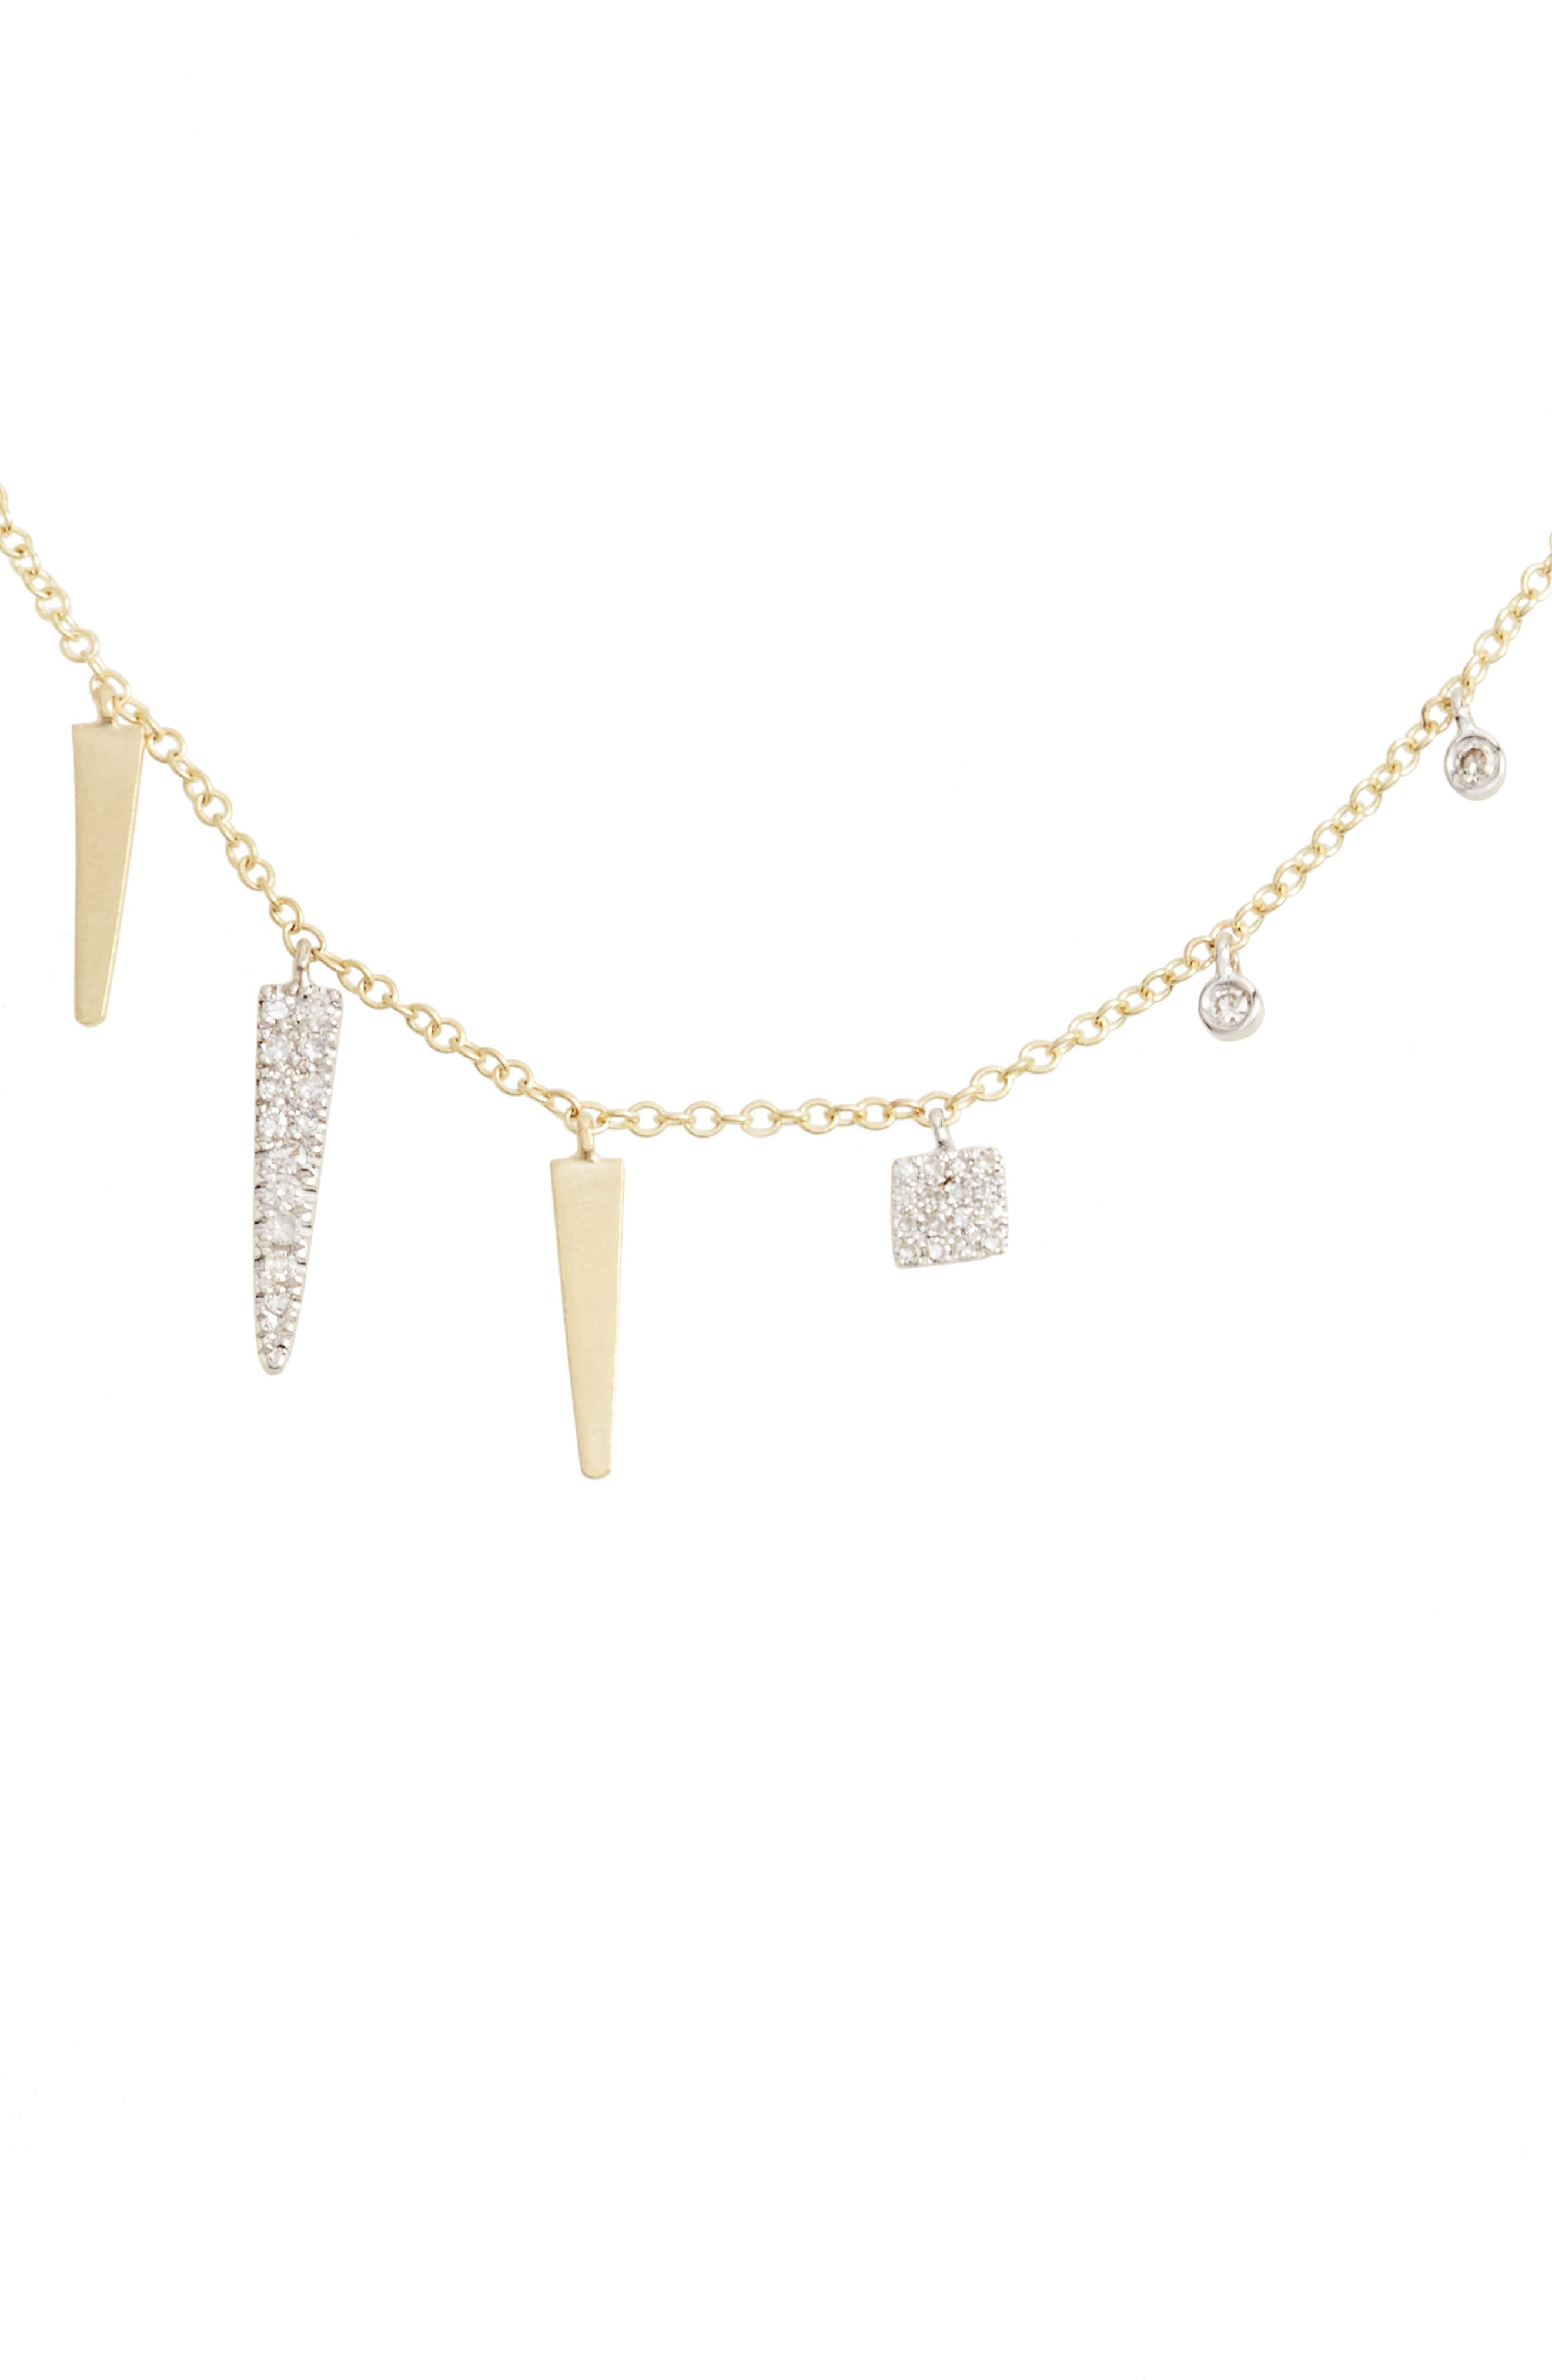 Diamond Spike Dangle Charm Necklace,                             Main thumbnail 1, color,                             713